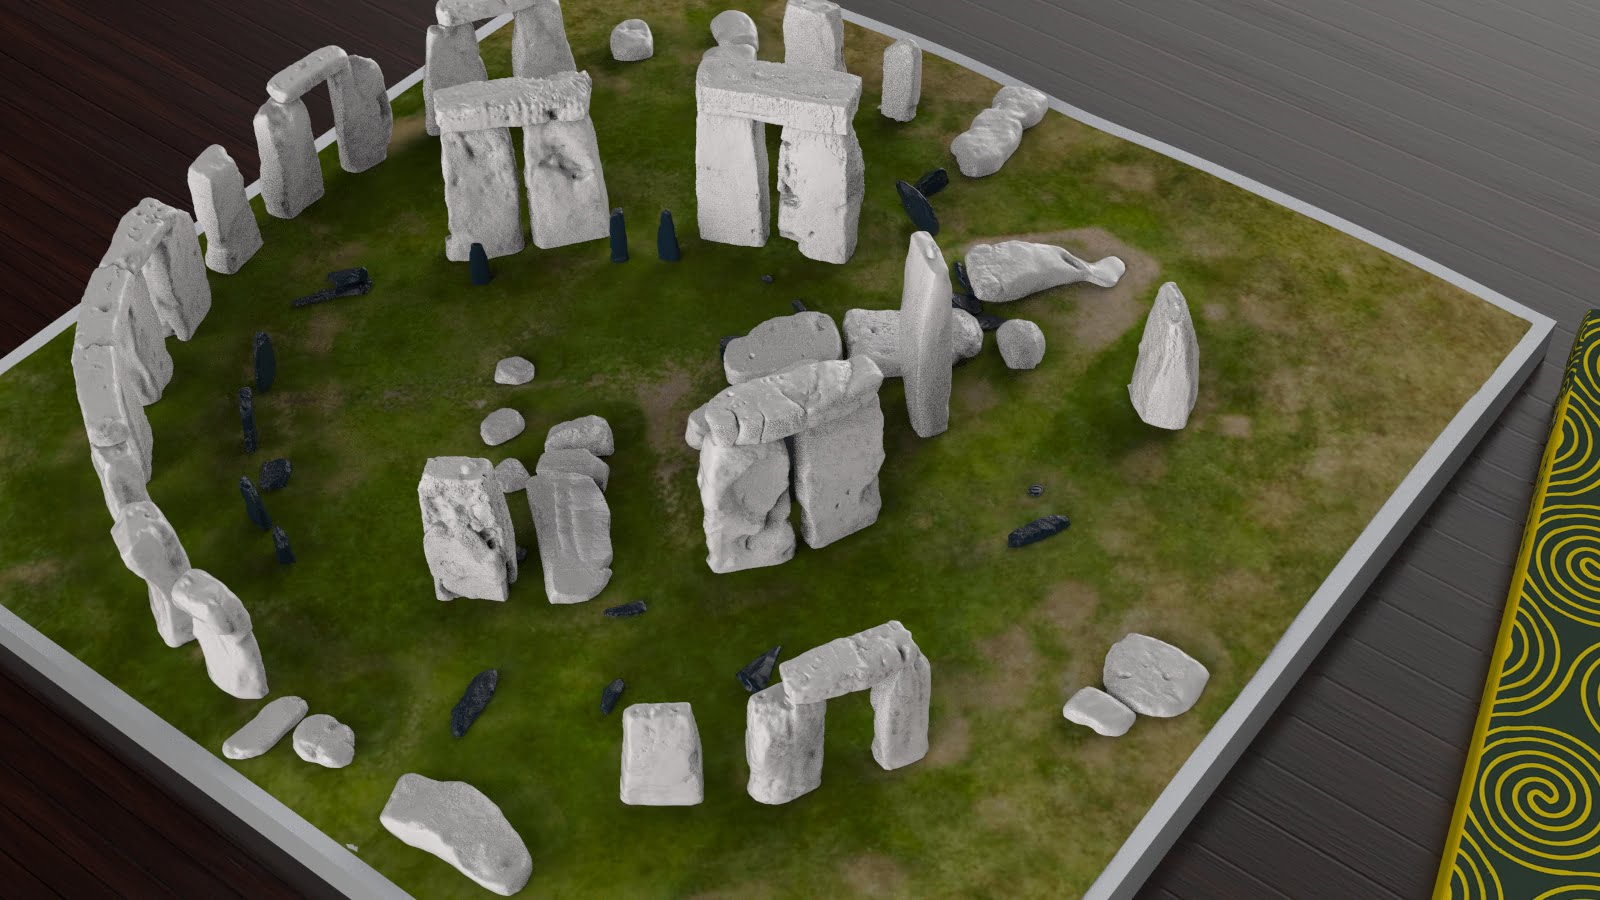 Buy Stonehenge Models: Stonehenge model replica at 200th scale on plain grass with parch marks of missing stones off white sarsens and iron blue bluestones 195 x 195 mm or 7 x 7 inches square 002  - 200th scale pick n mix -